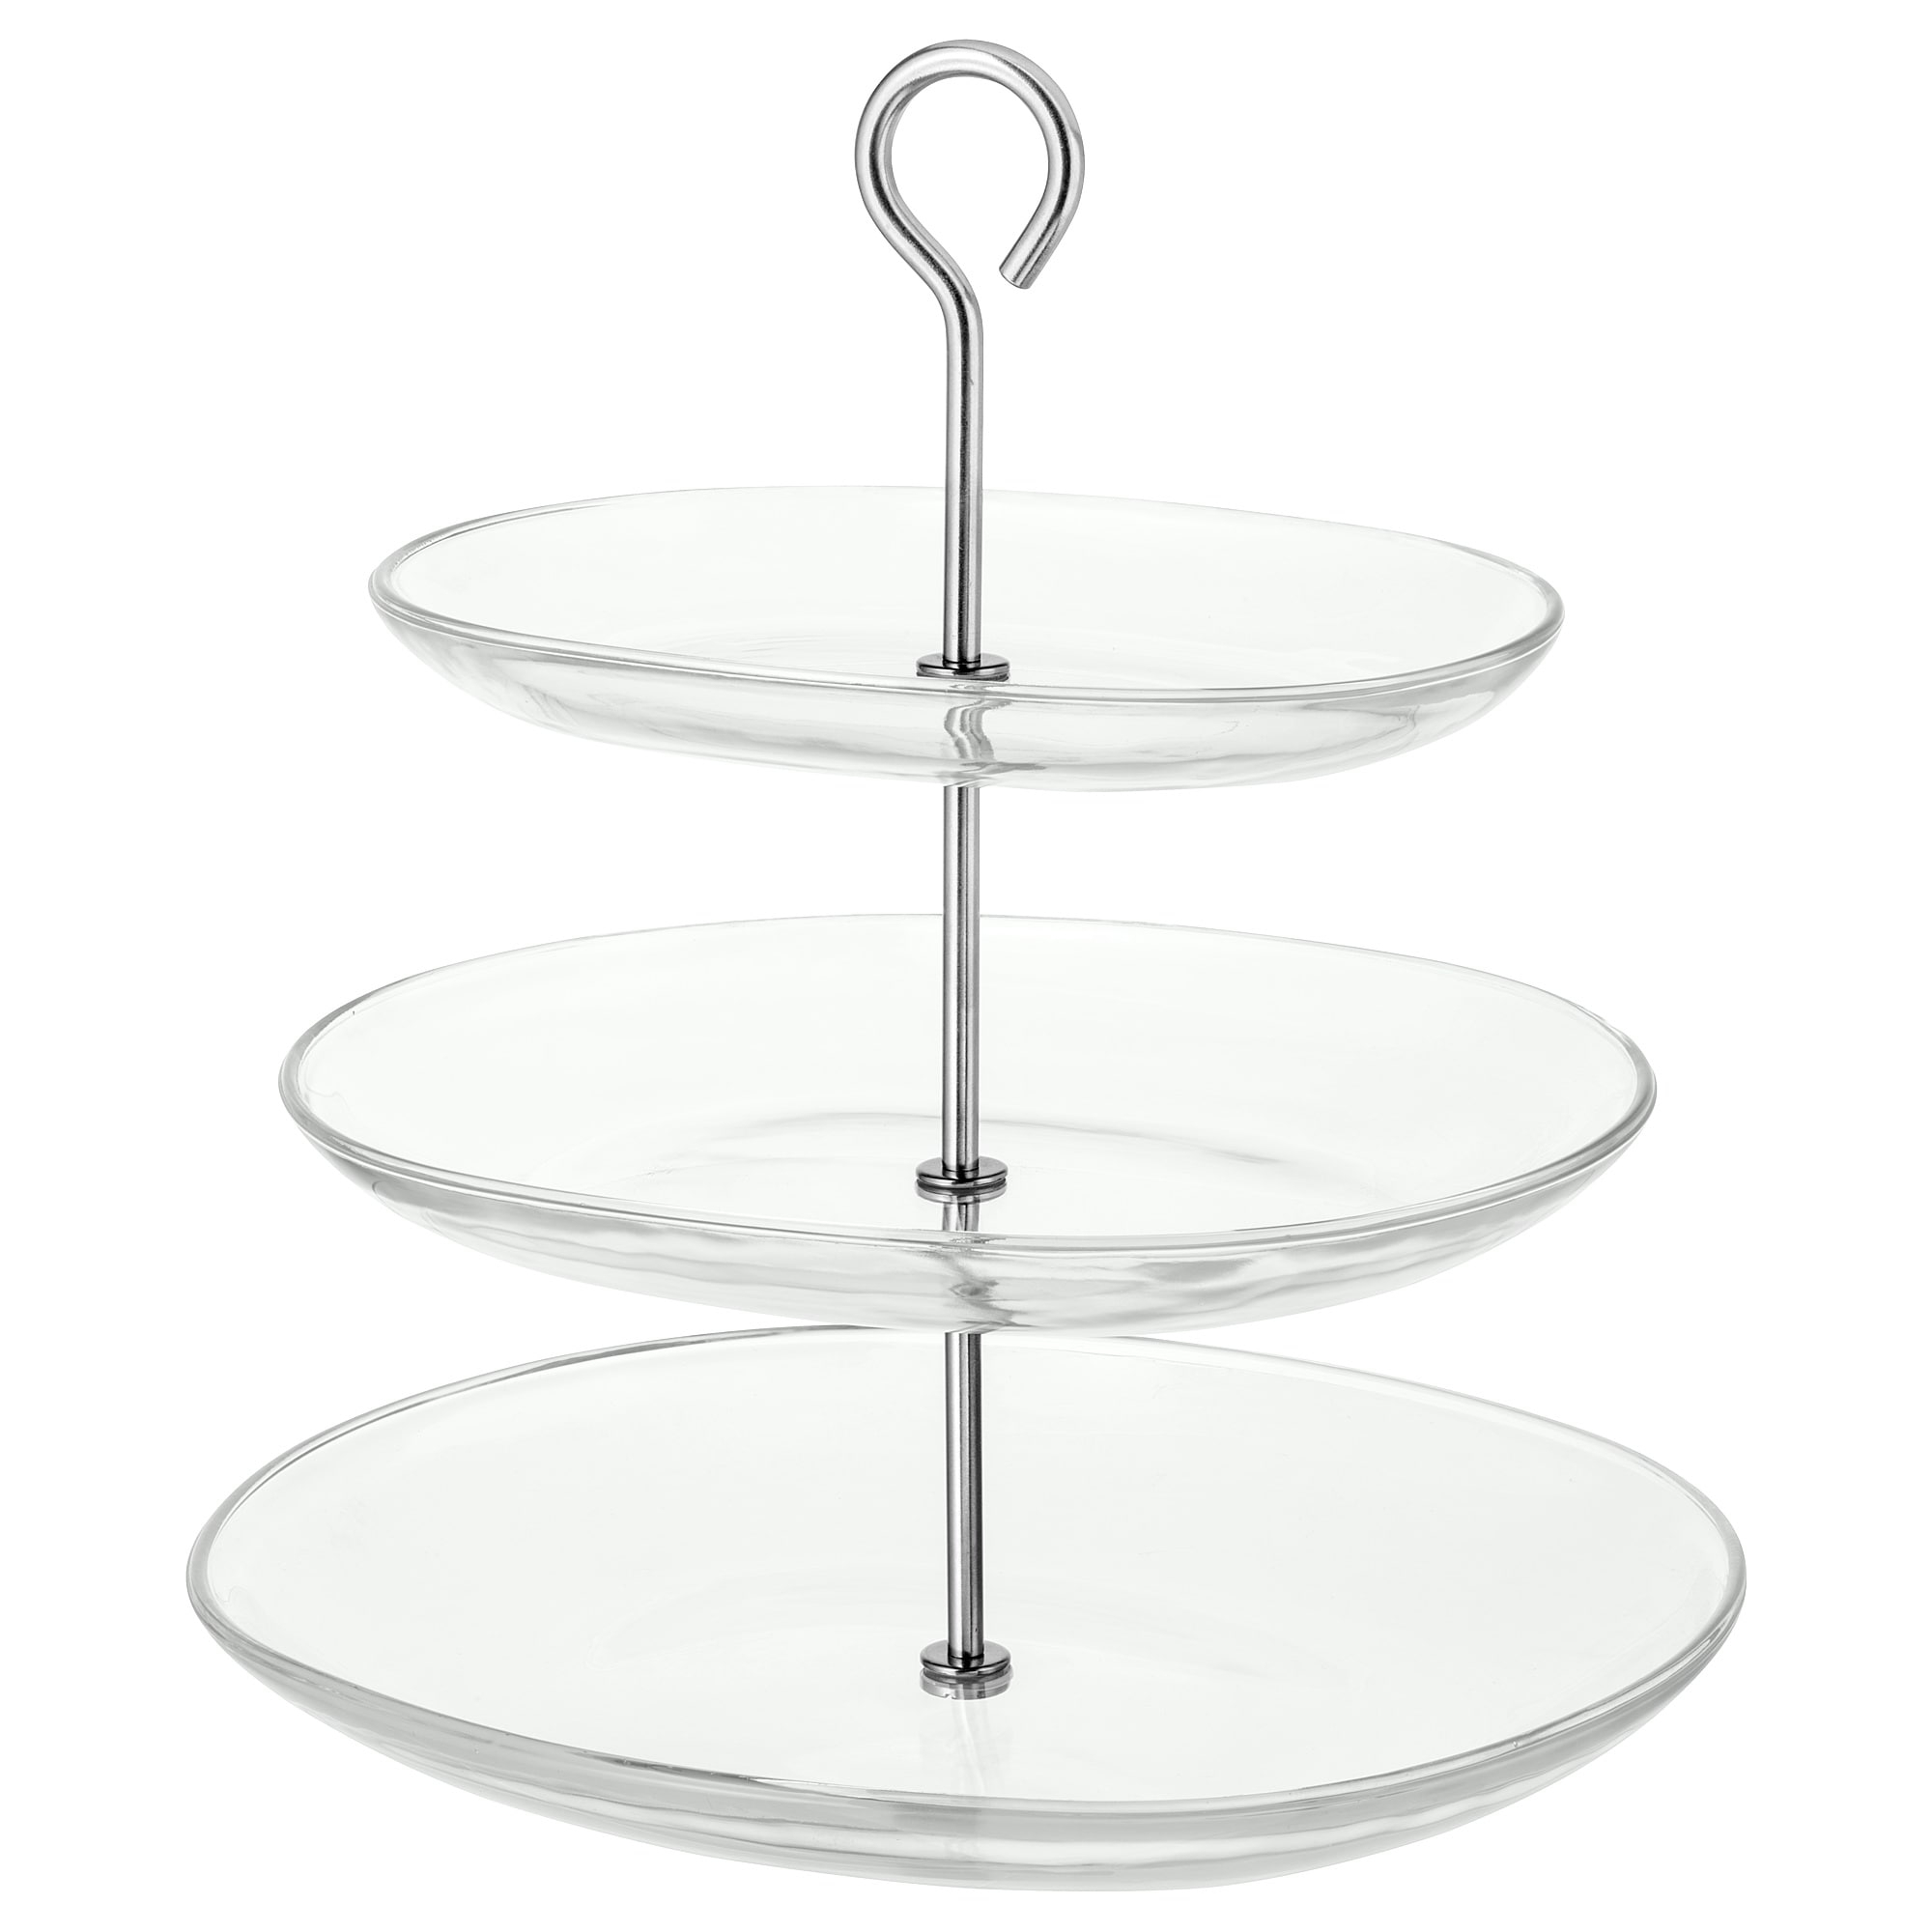 Serving Stand, Three Tiers Kvittera Clear Glass, Stainless Steel Throughout Contemporary Three Tier Glass Buffets With Black Metal Frame (View 26 of 30)